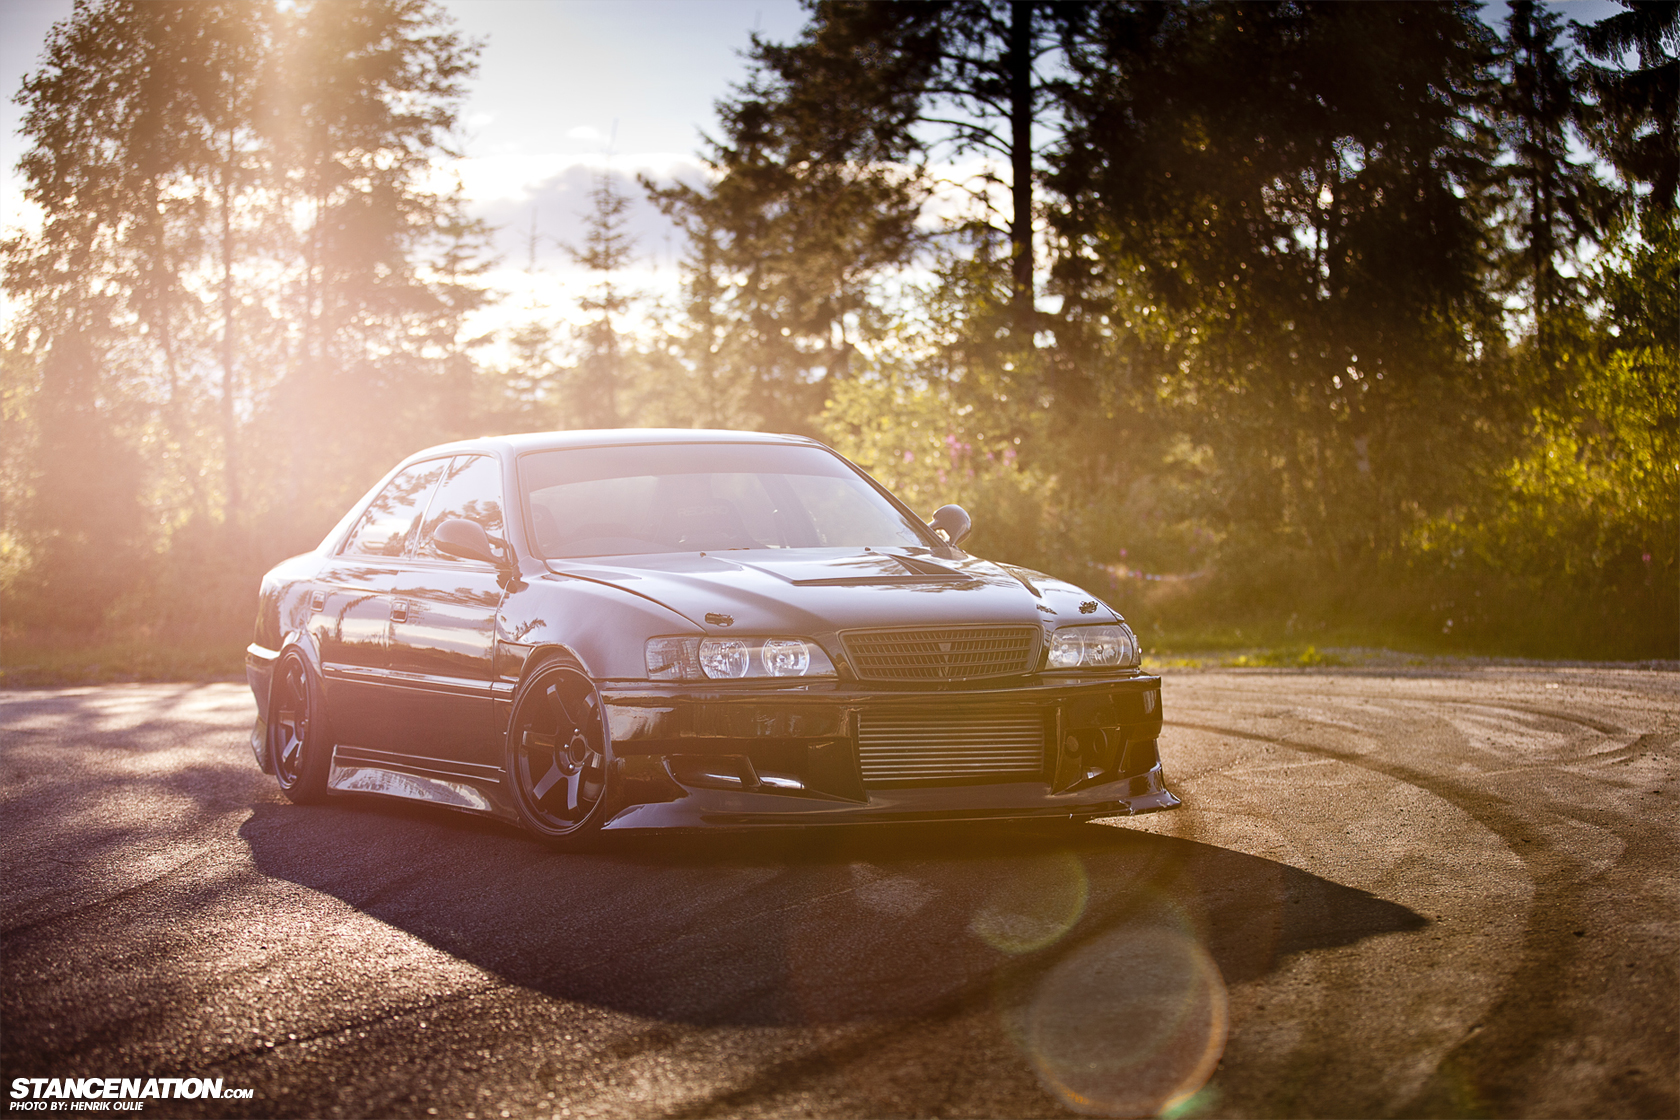 The Dream Chaser Stancenation Form Gt Function